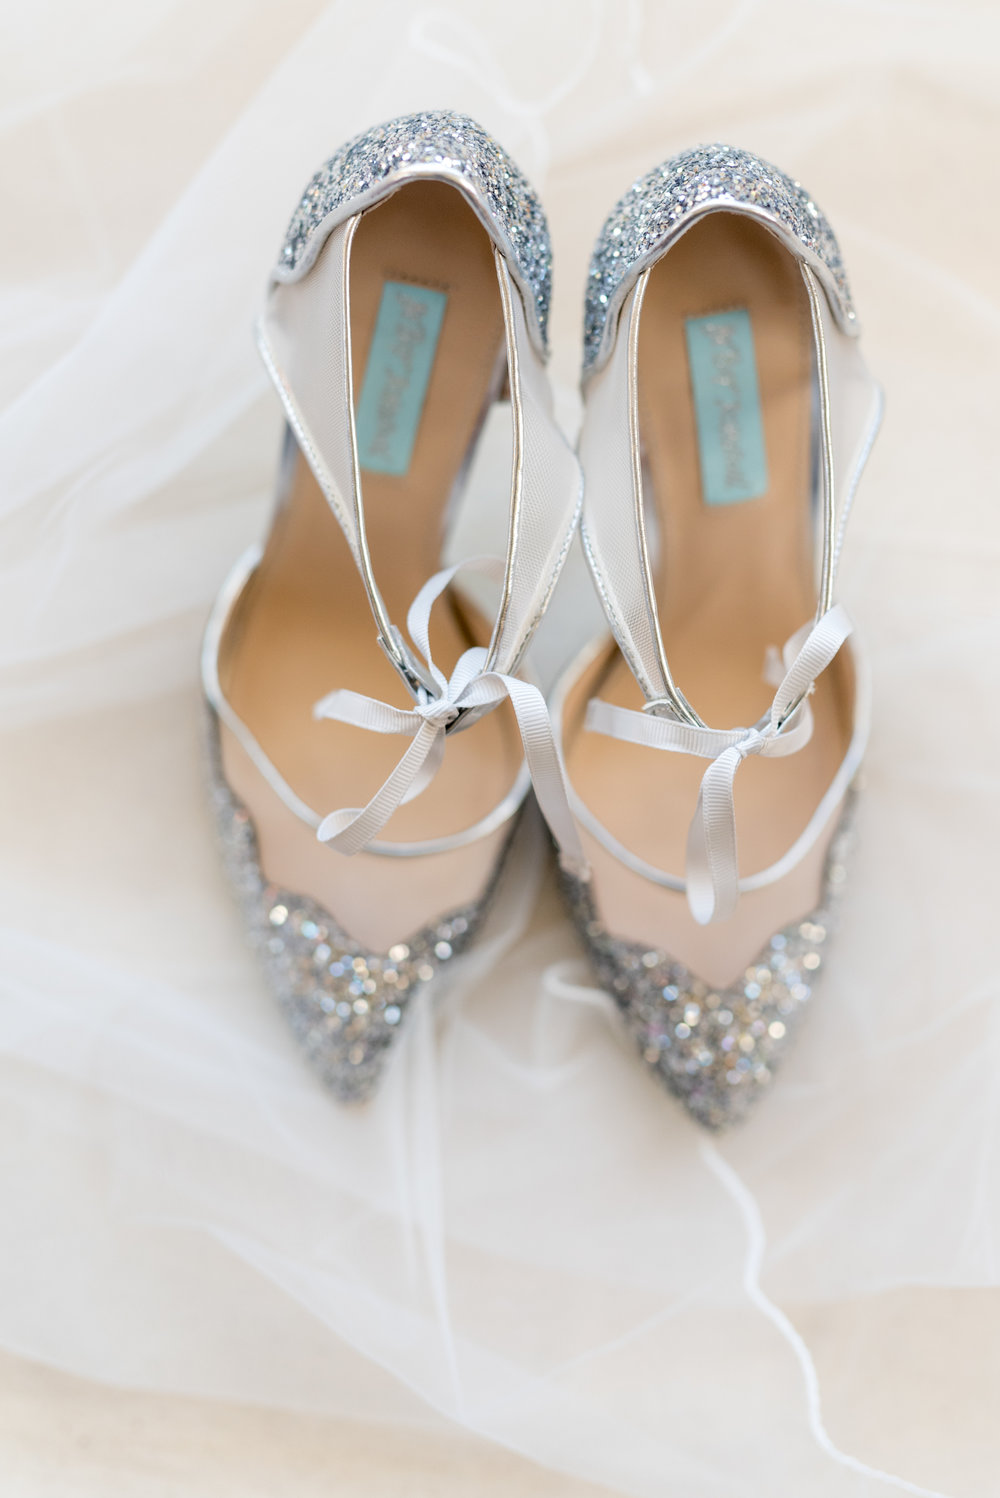 Glittery bridal shoe details Lancaster PA wedding photography photo